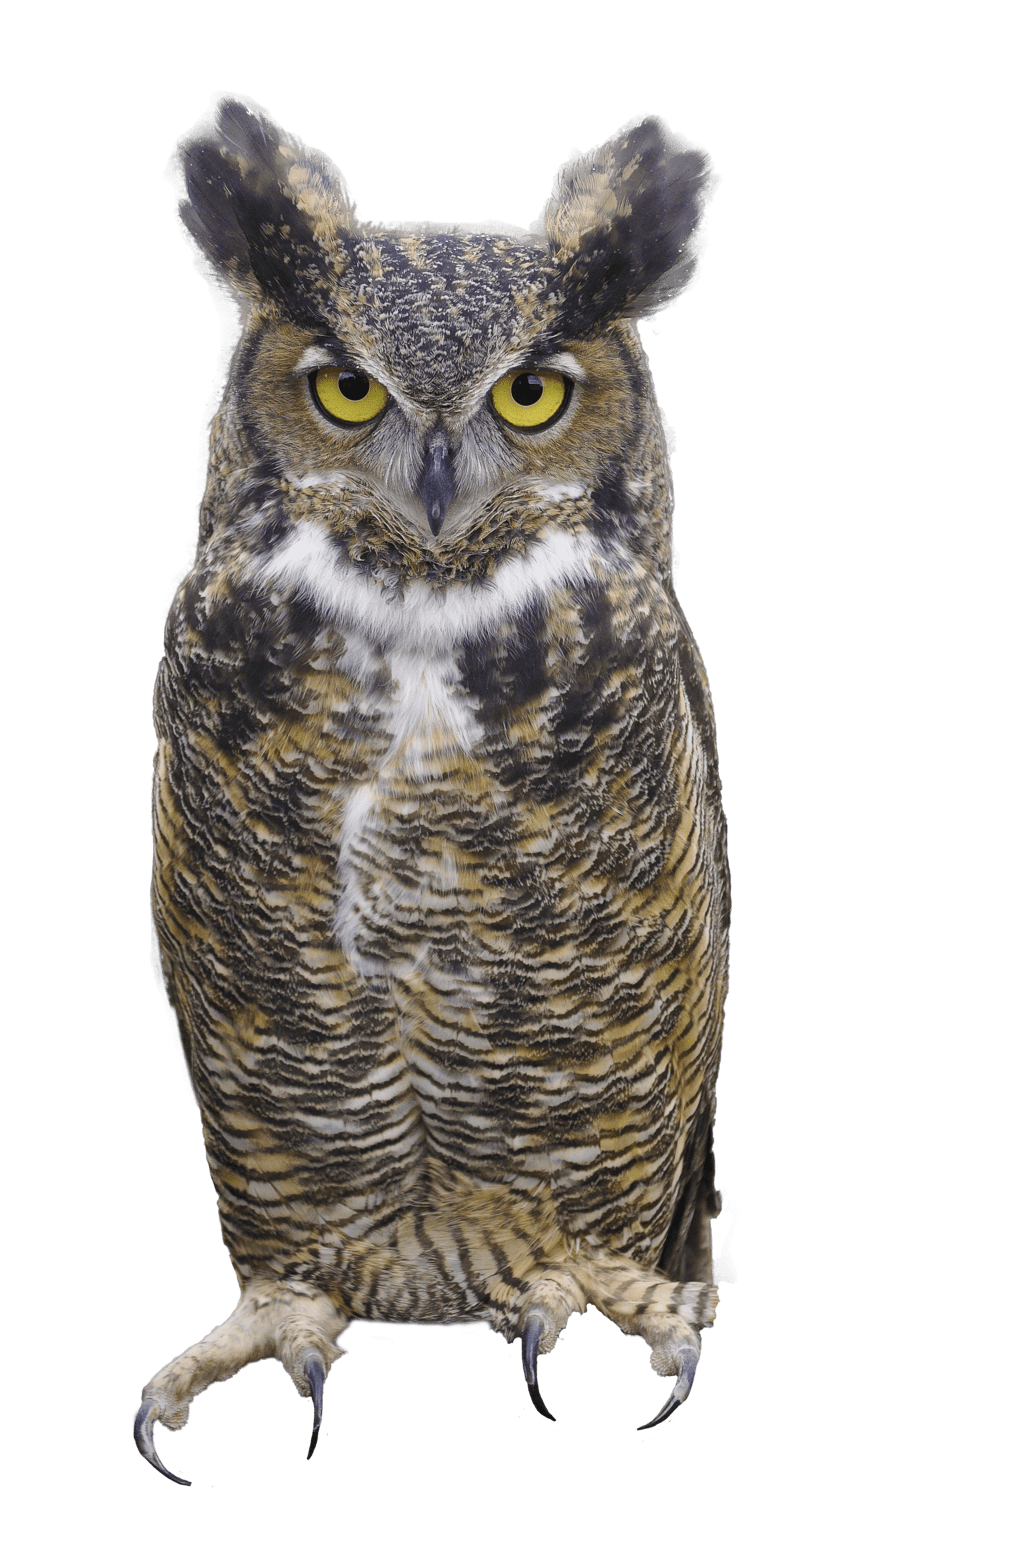 Animated Fish Wallpaper Hd Owl Png